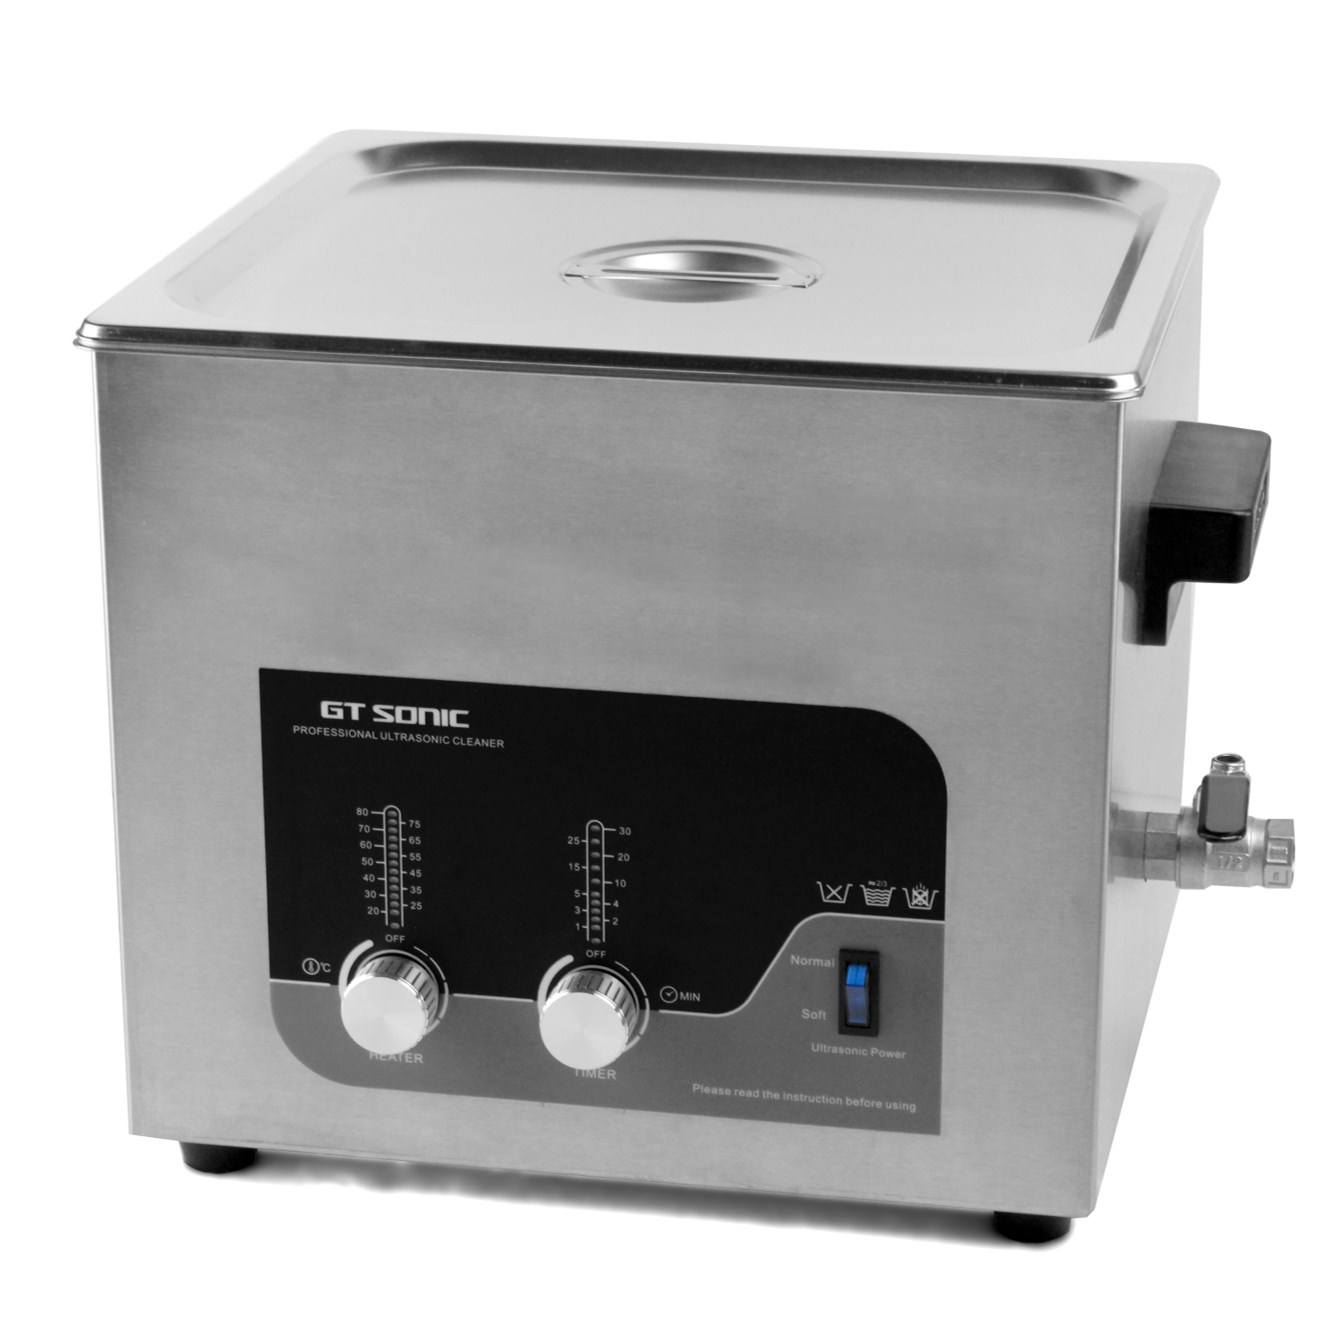 13L SUS304 stainless steel ultrasonic pcb cleaning machine with double power